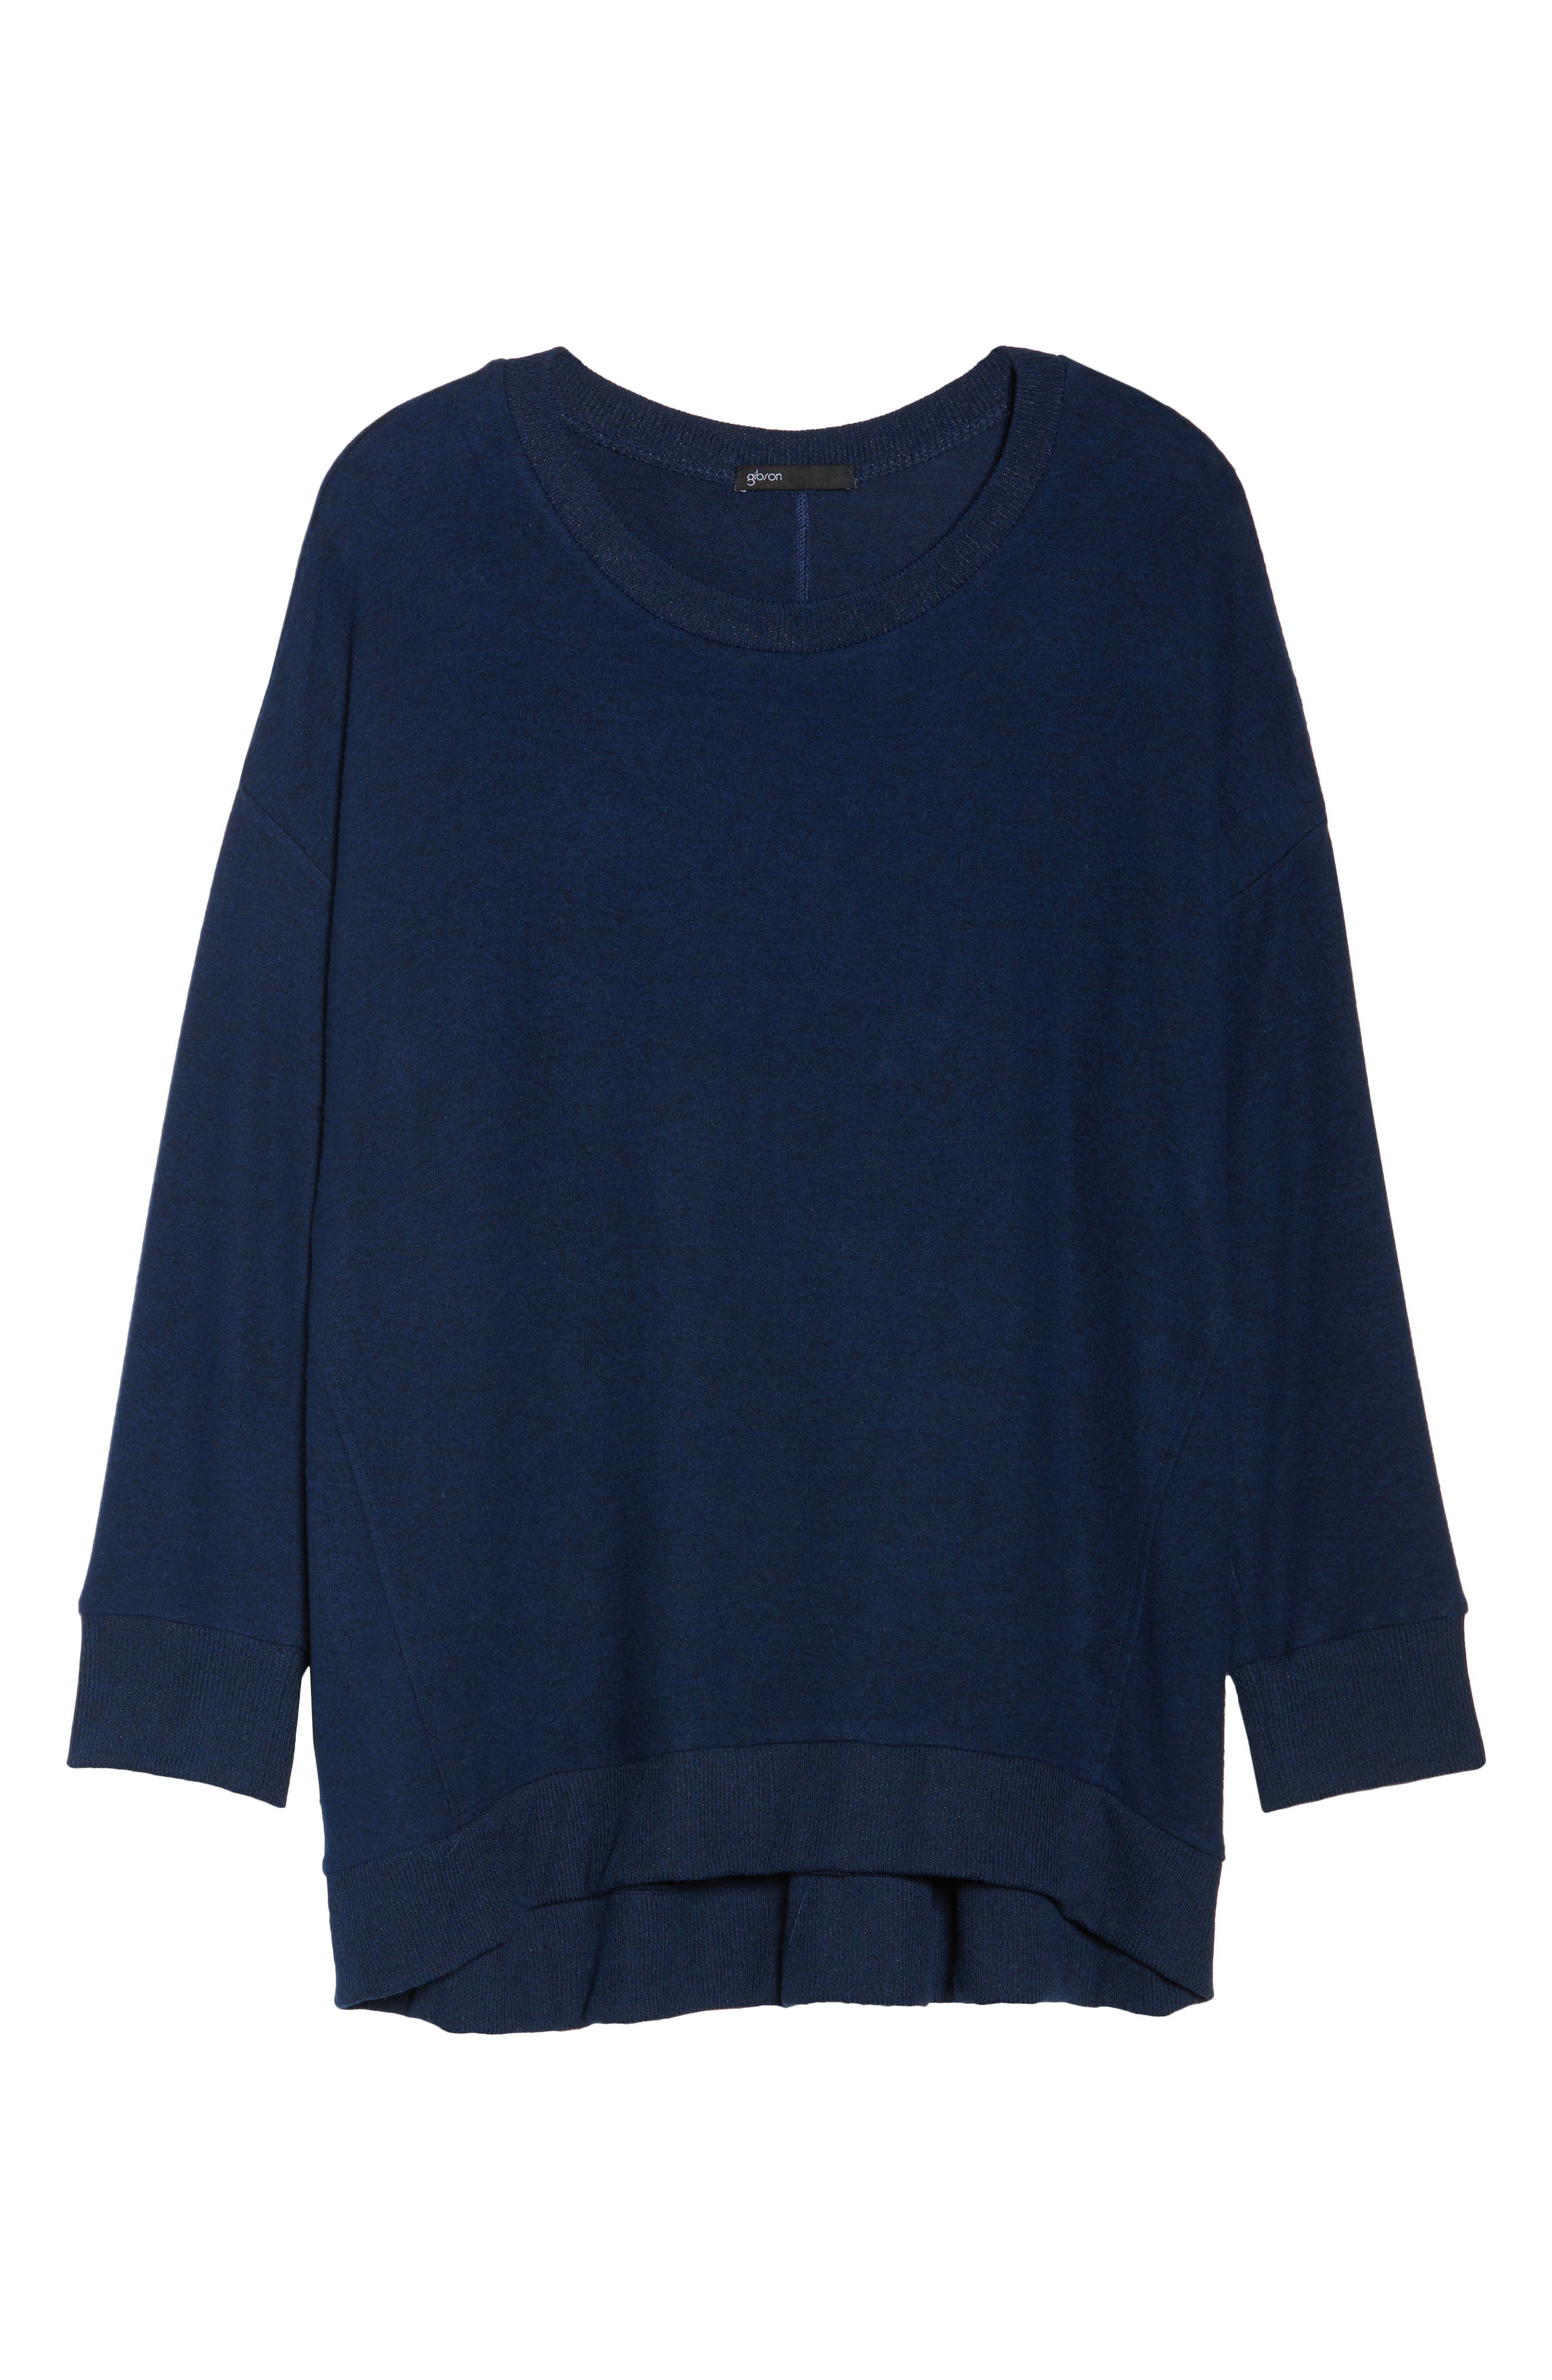 x Living in Yellow Chelsea Shirttail Sweater,                             Alternate thumbnail 8, color,                             Navy